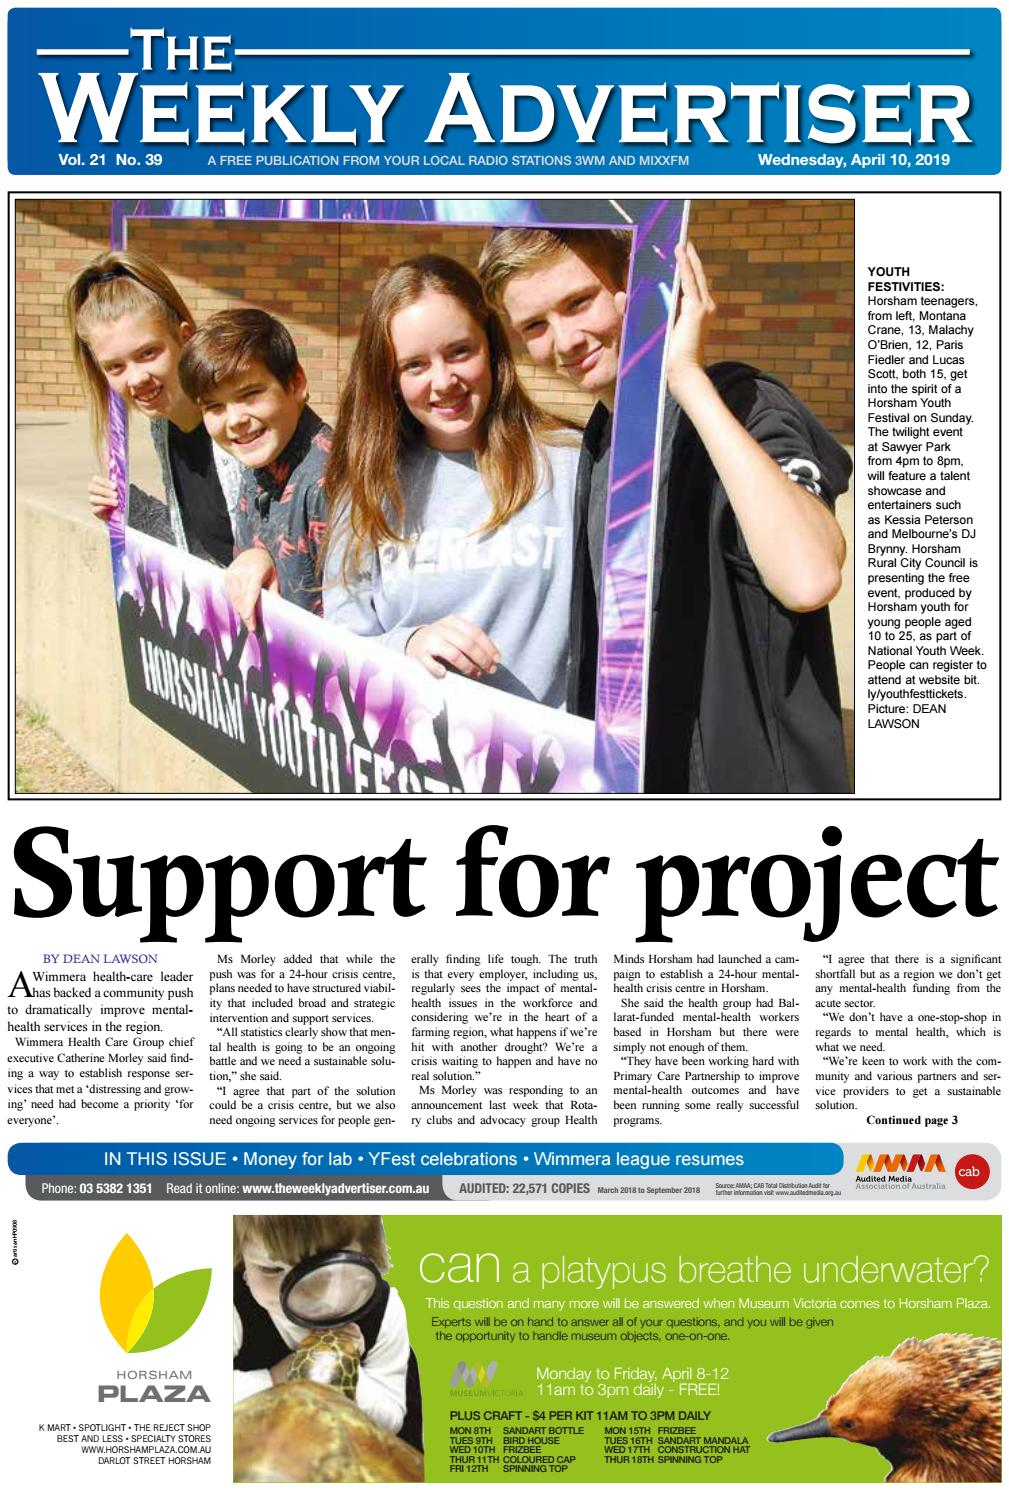 The Weekly Advertiser Wednesday April 10 2019 By The Weekly Advertiser Issuu